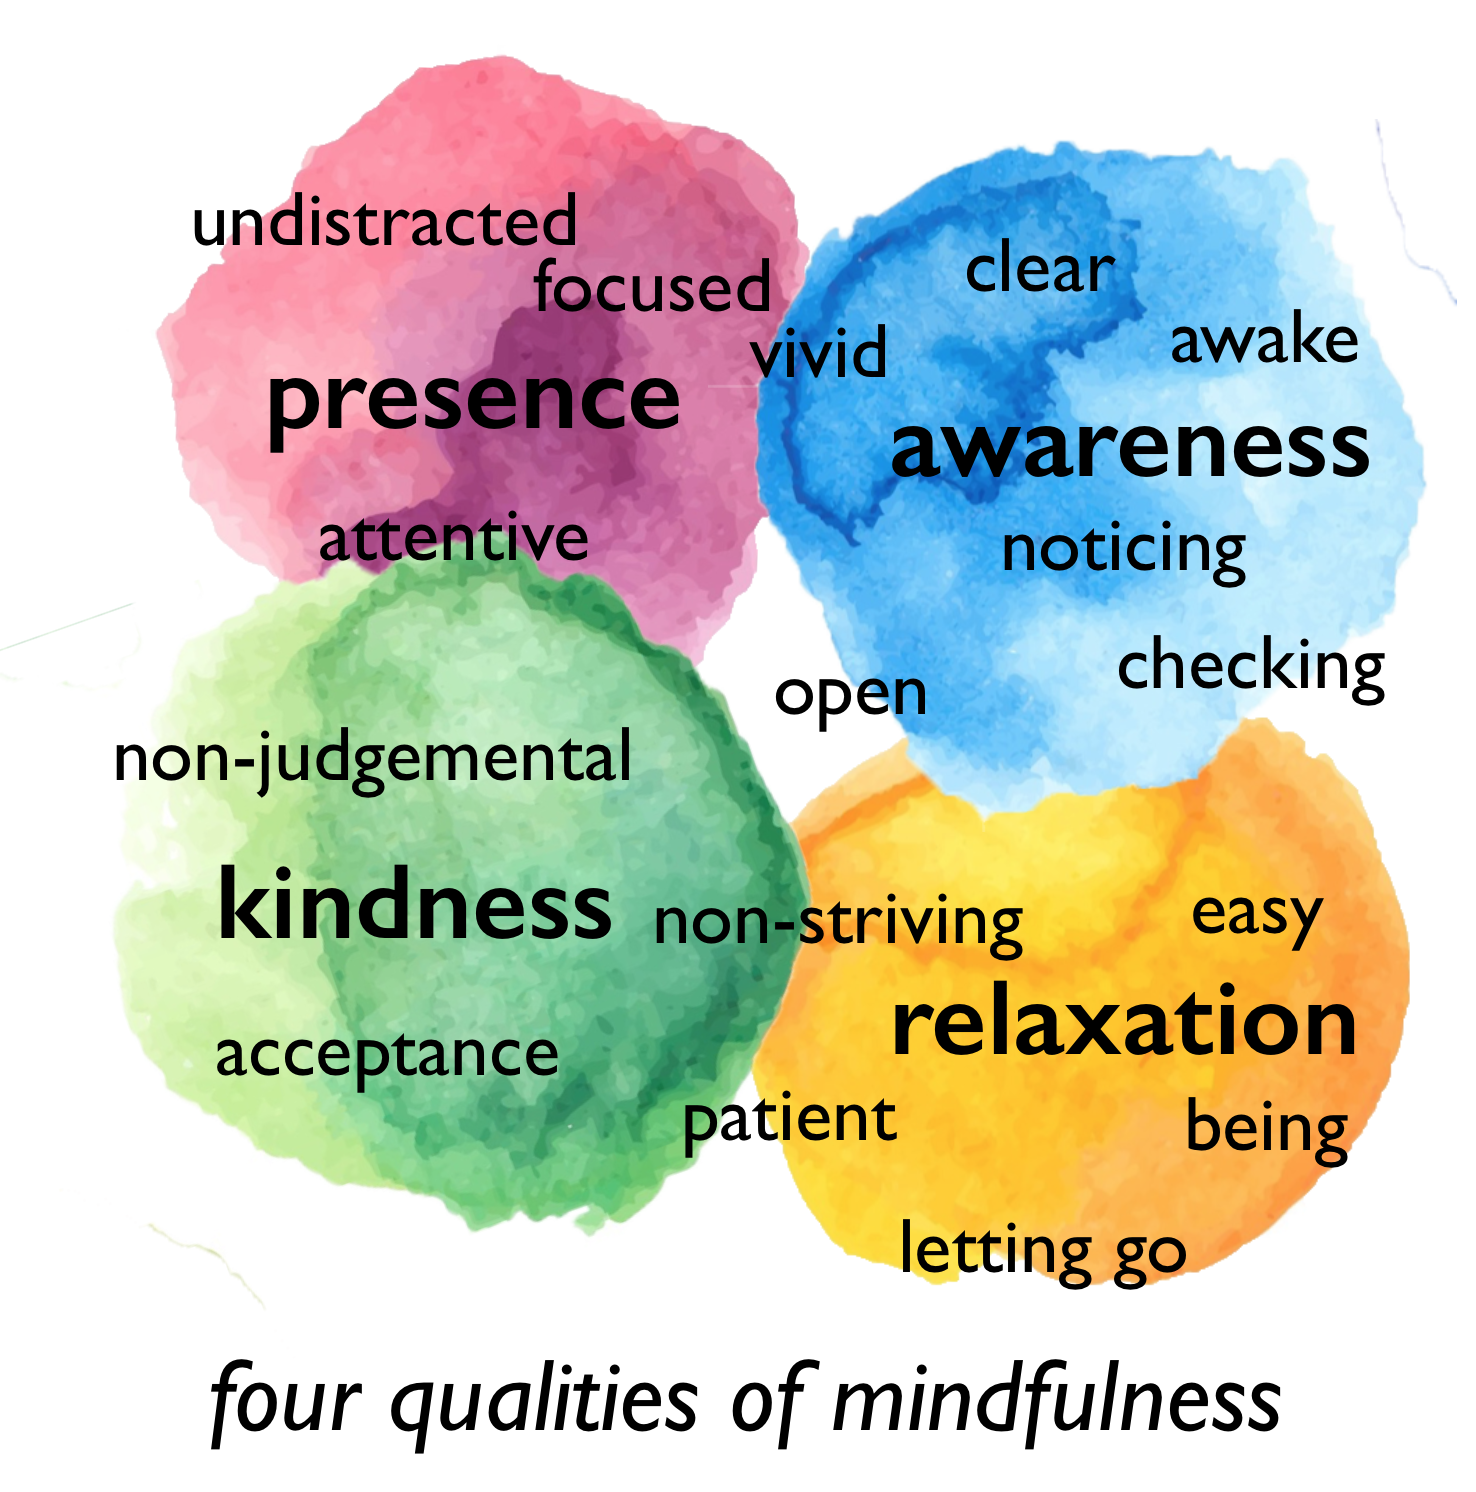 Qualities of kindness